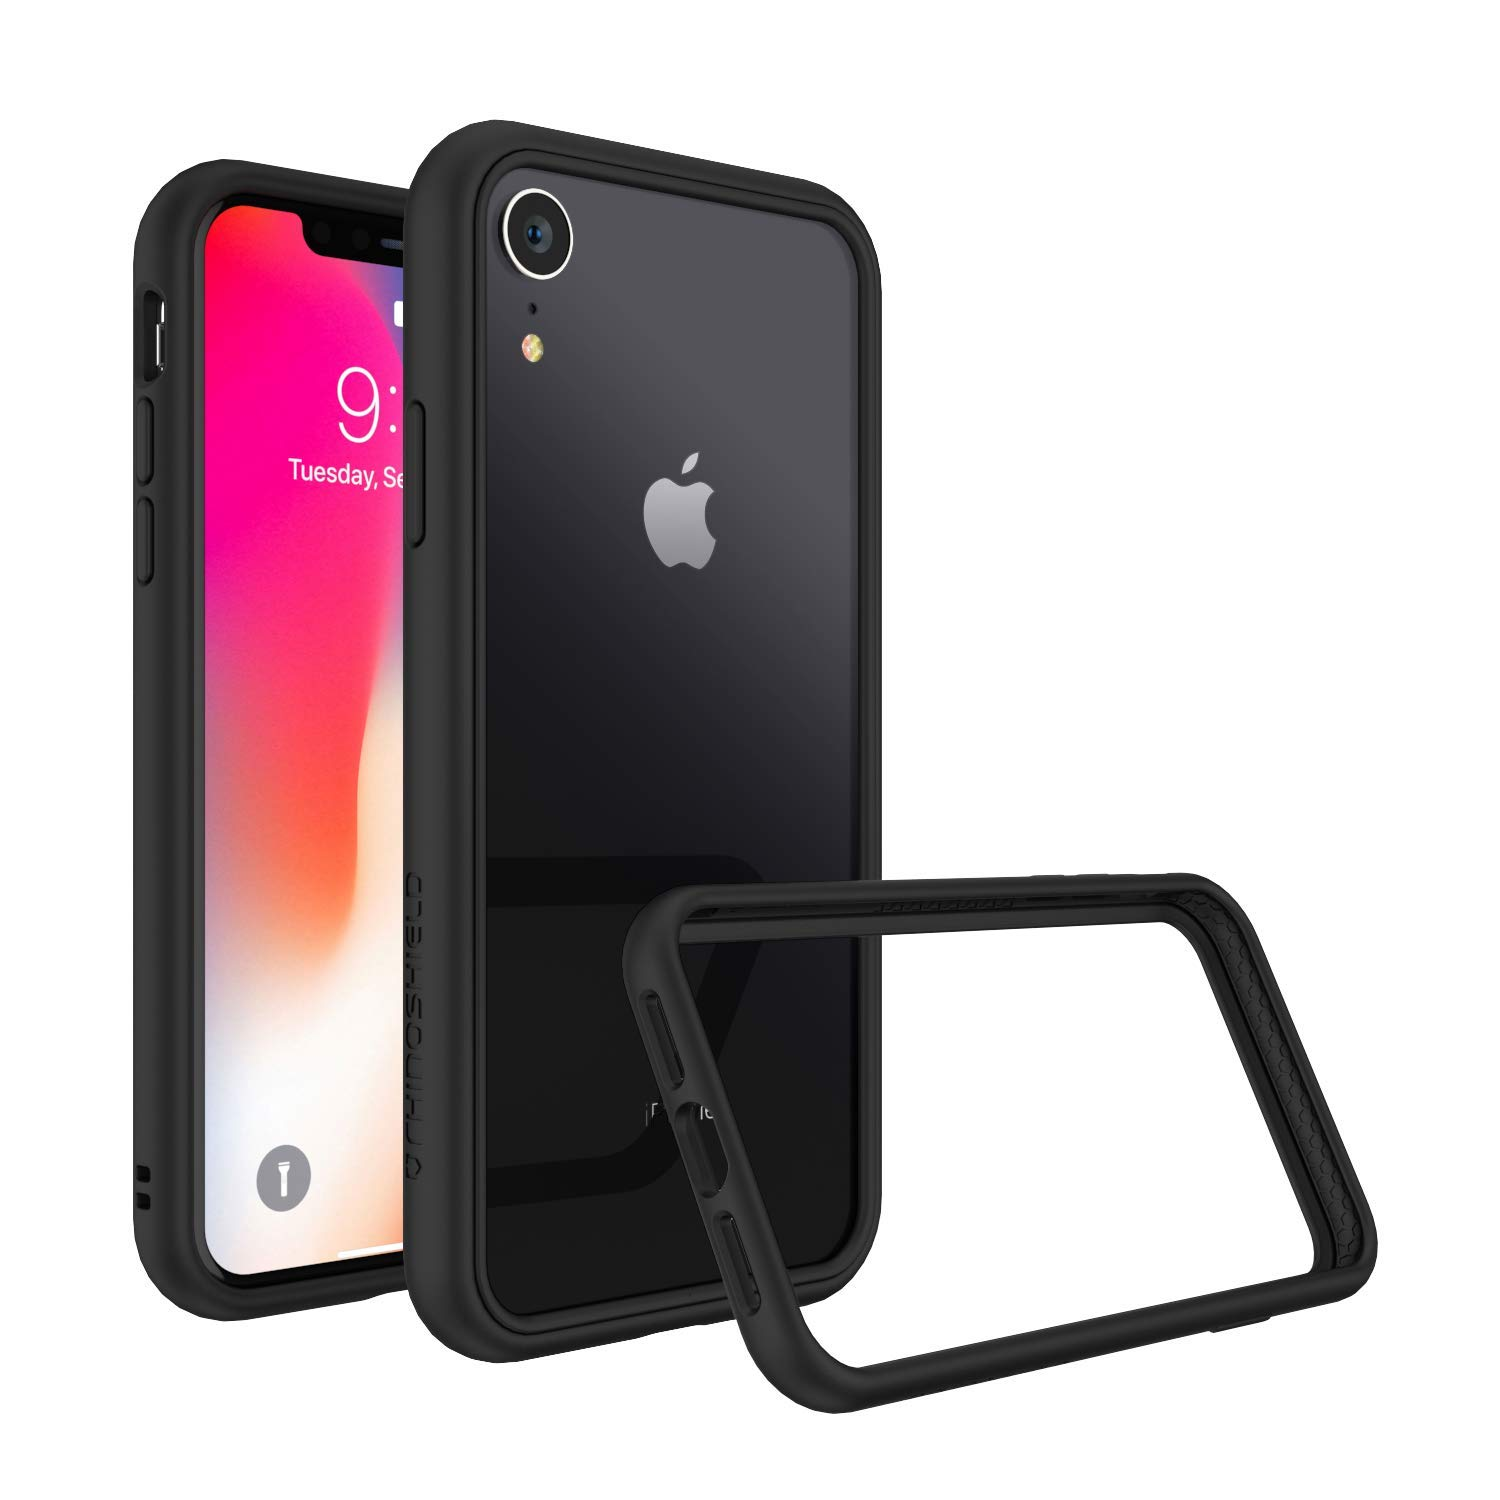 Rhinoshield Mod Nx Case Cover For Iphone Xr With Rim Button Frame Clear Back Plate Black Buy Online In Barbados Rhinoshield Products In Barbados See Prices Reviews And Free Delivery